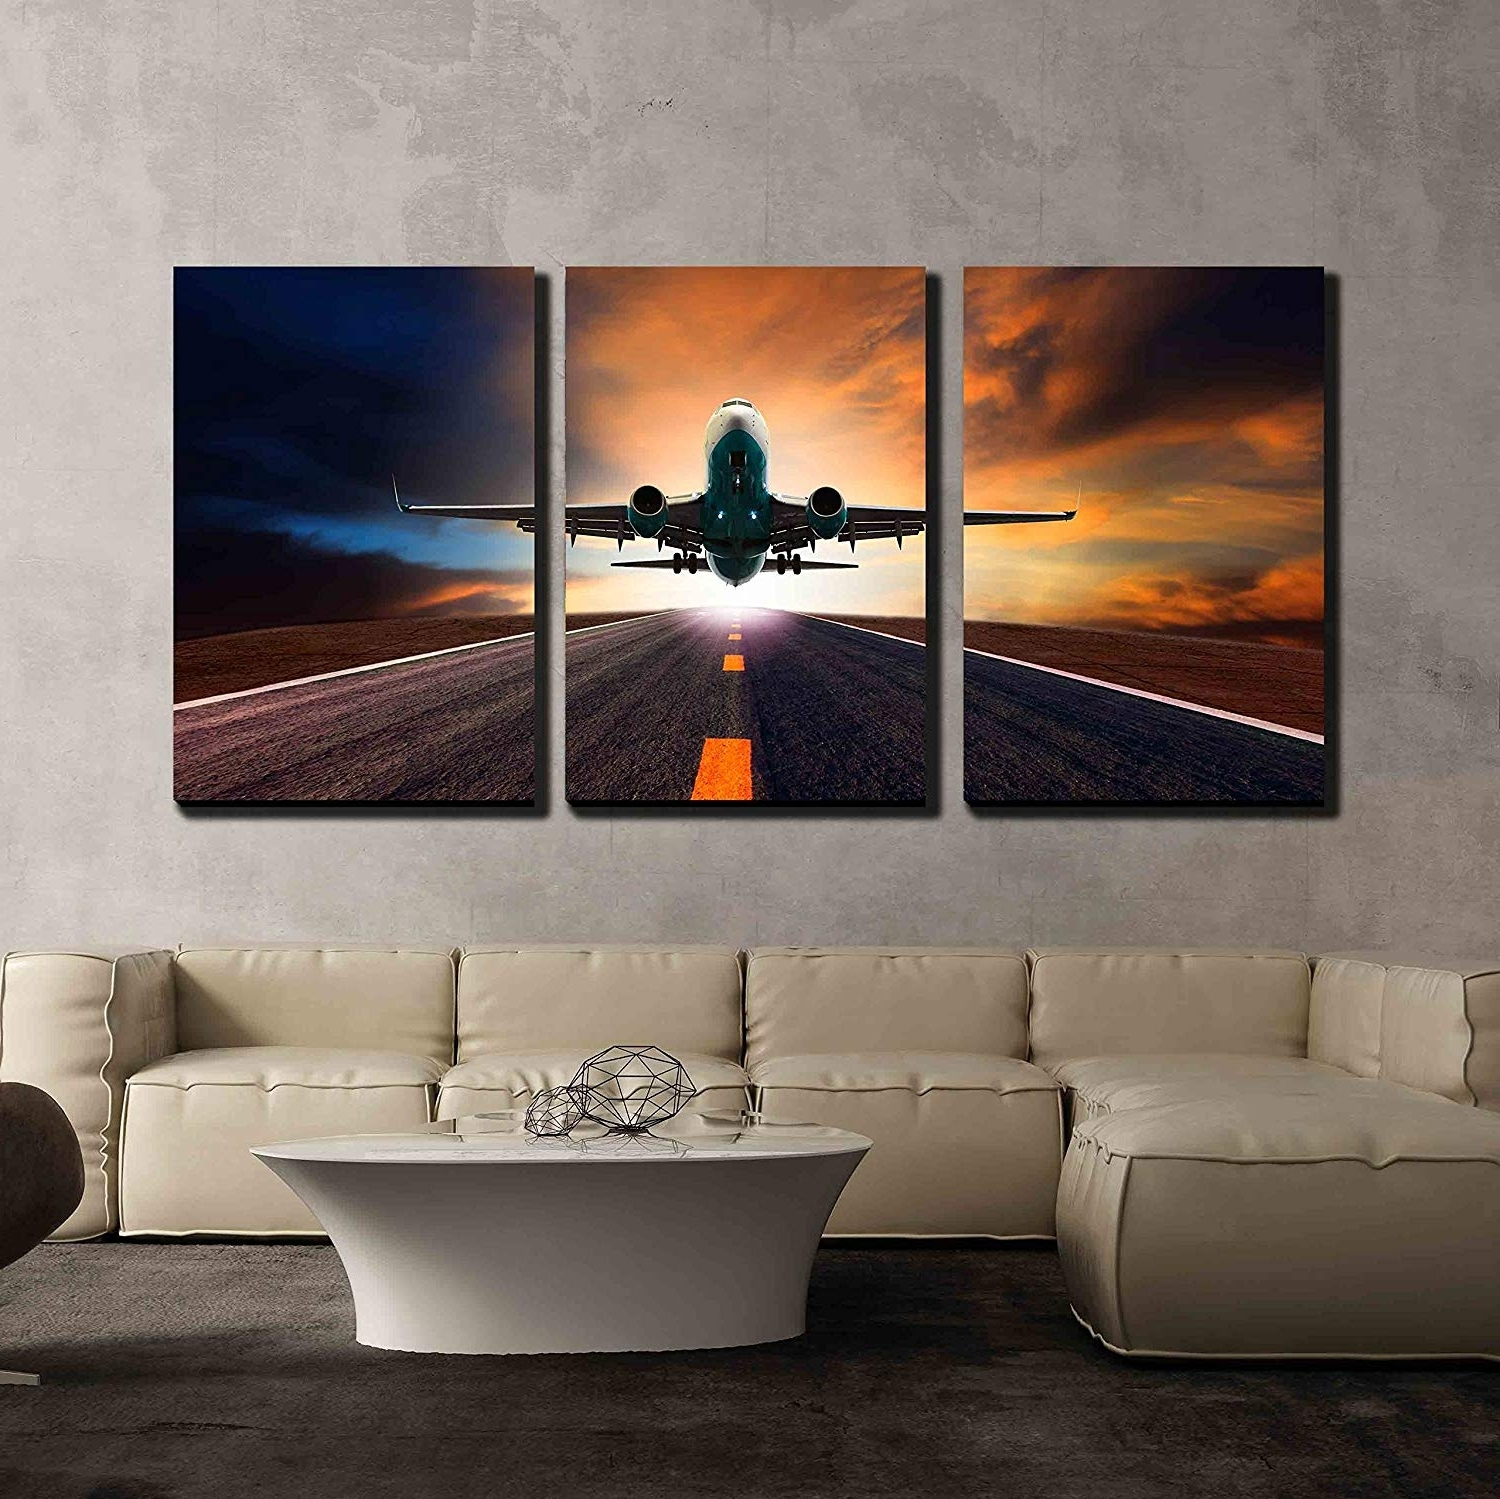 Most Current Airplane Wall Art With Regard To Amazon: Wall26 – 3 Piece Canvas Wall Art – Passenger Jet Plane (View 8 of 15)